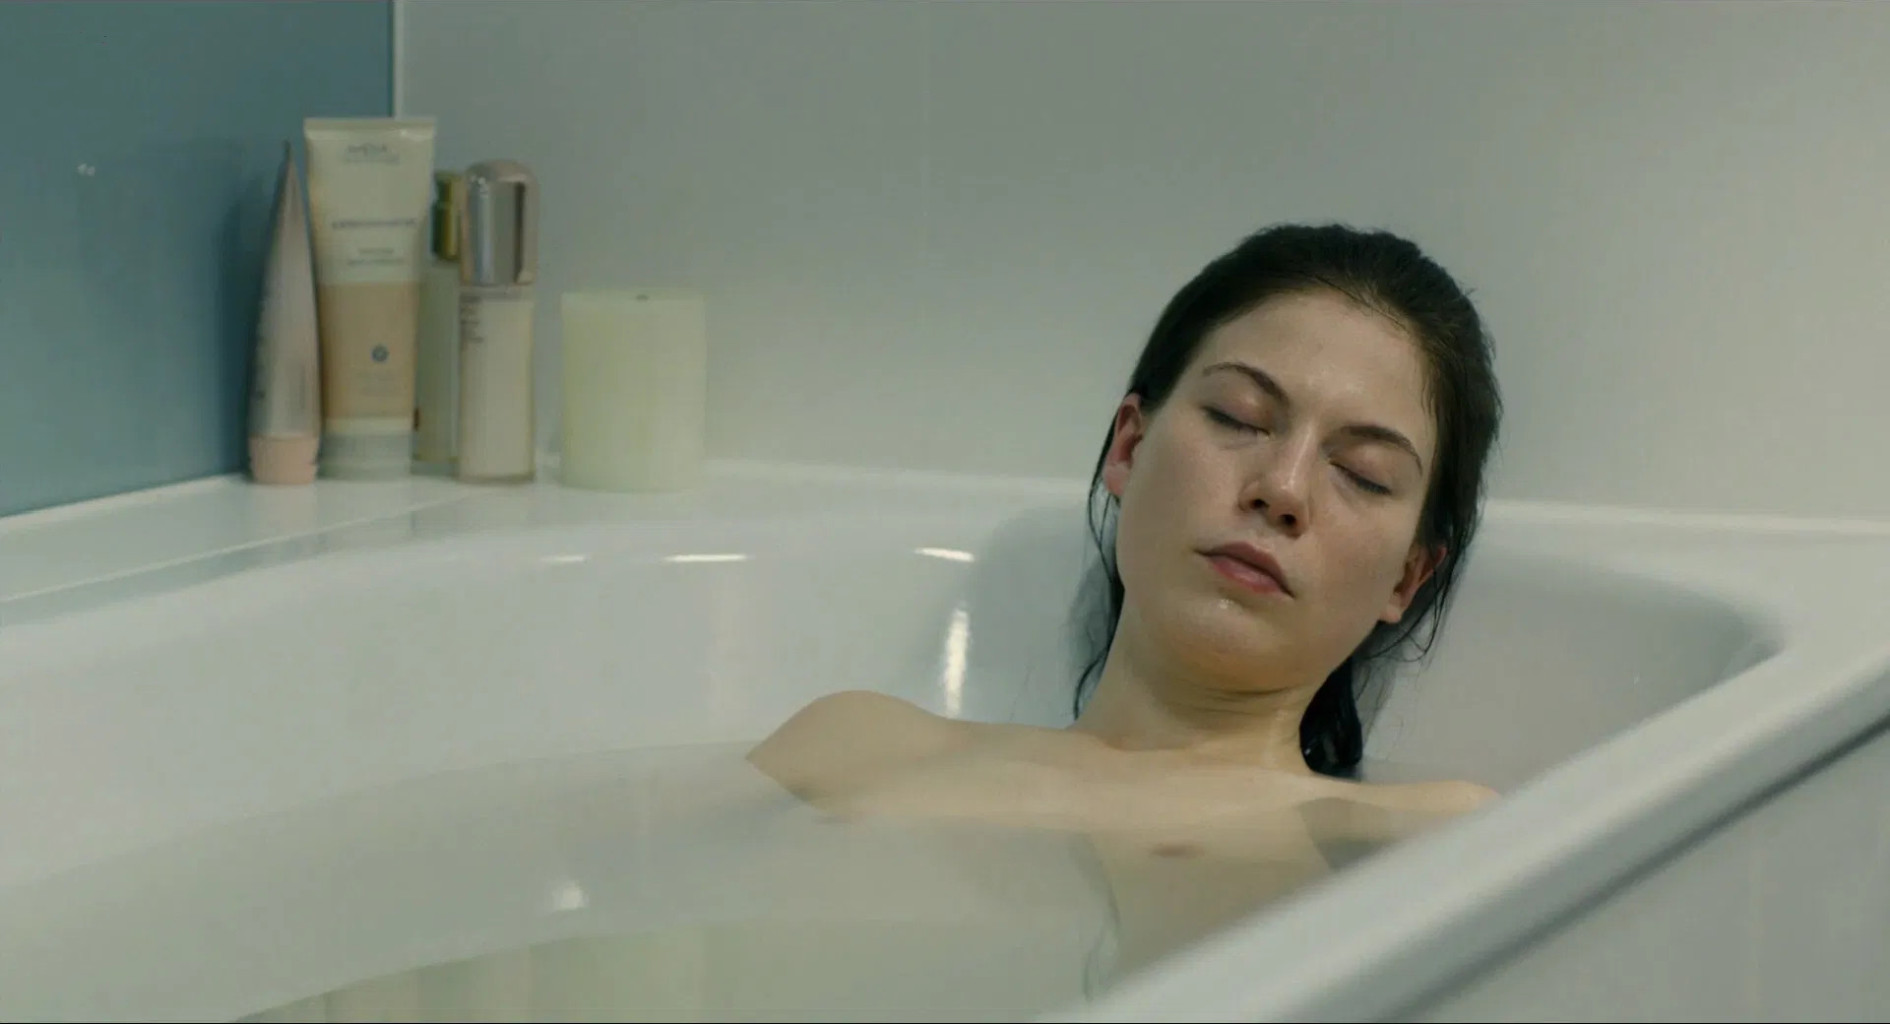 nora-von-waldstätten actress film bathtub